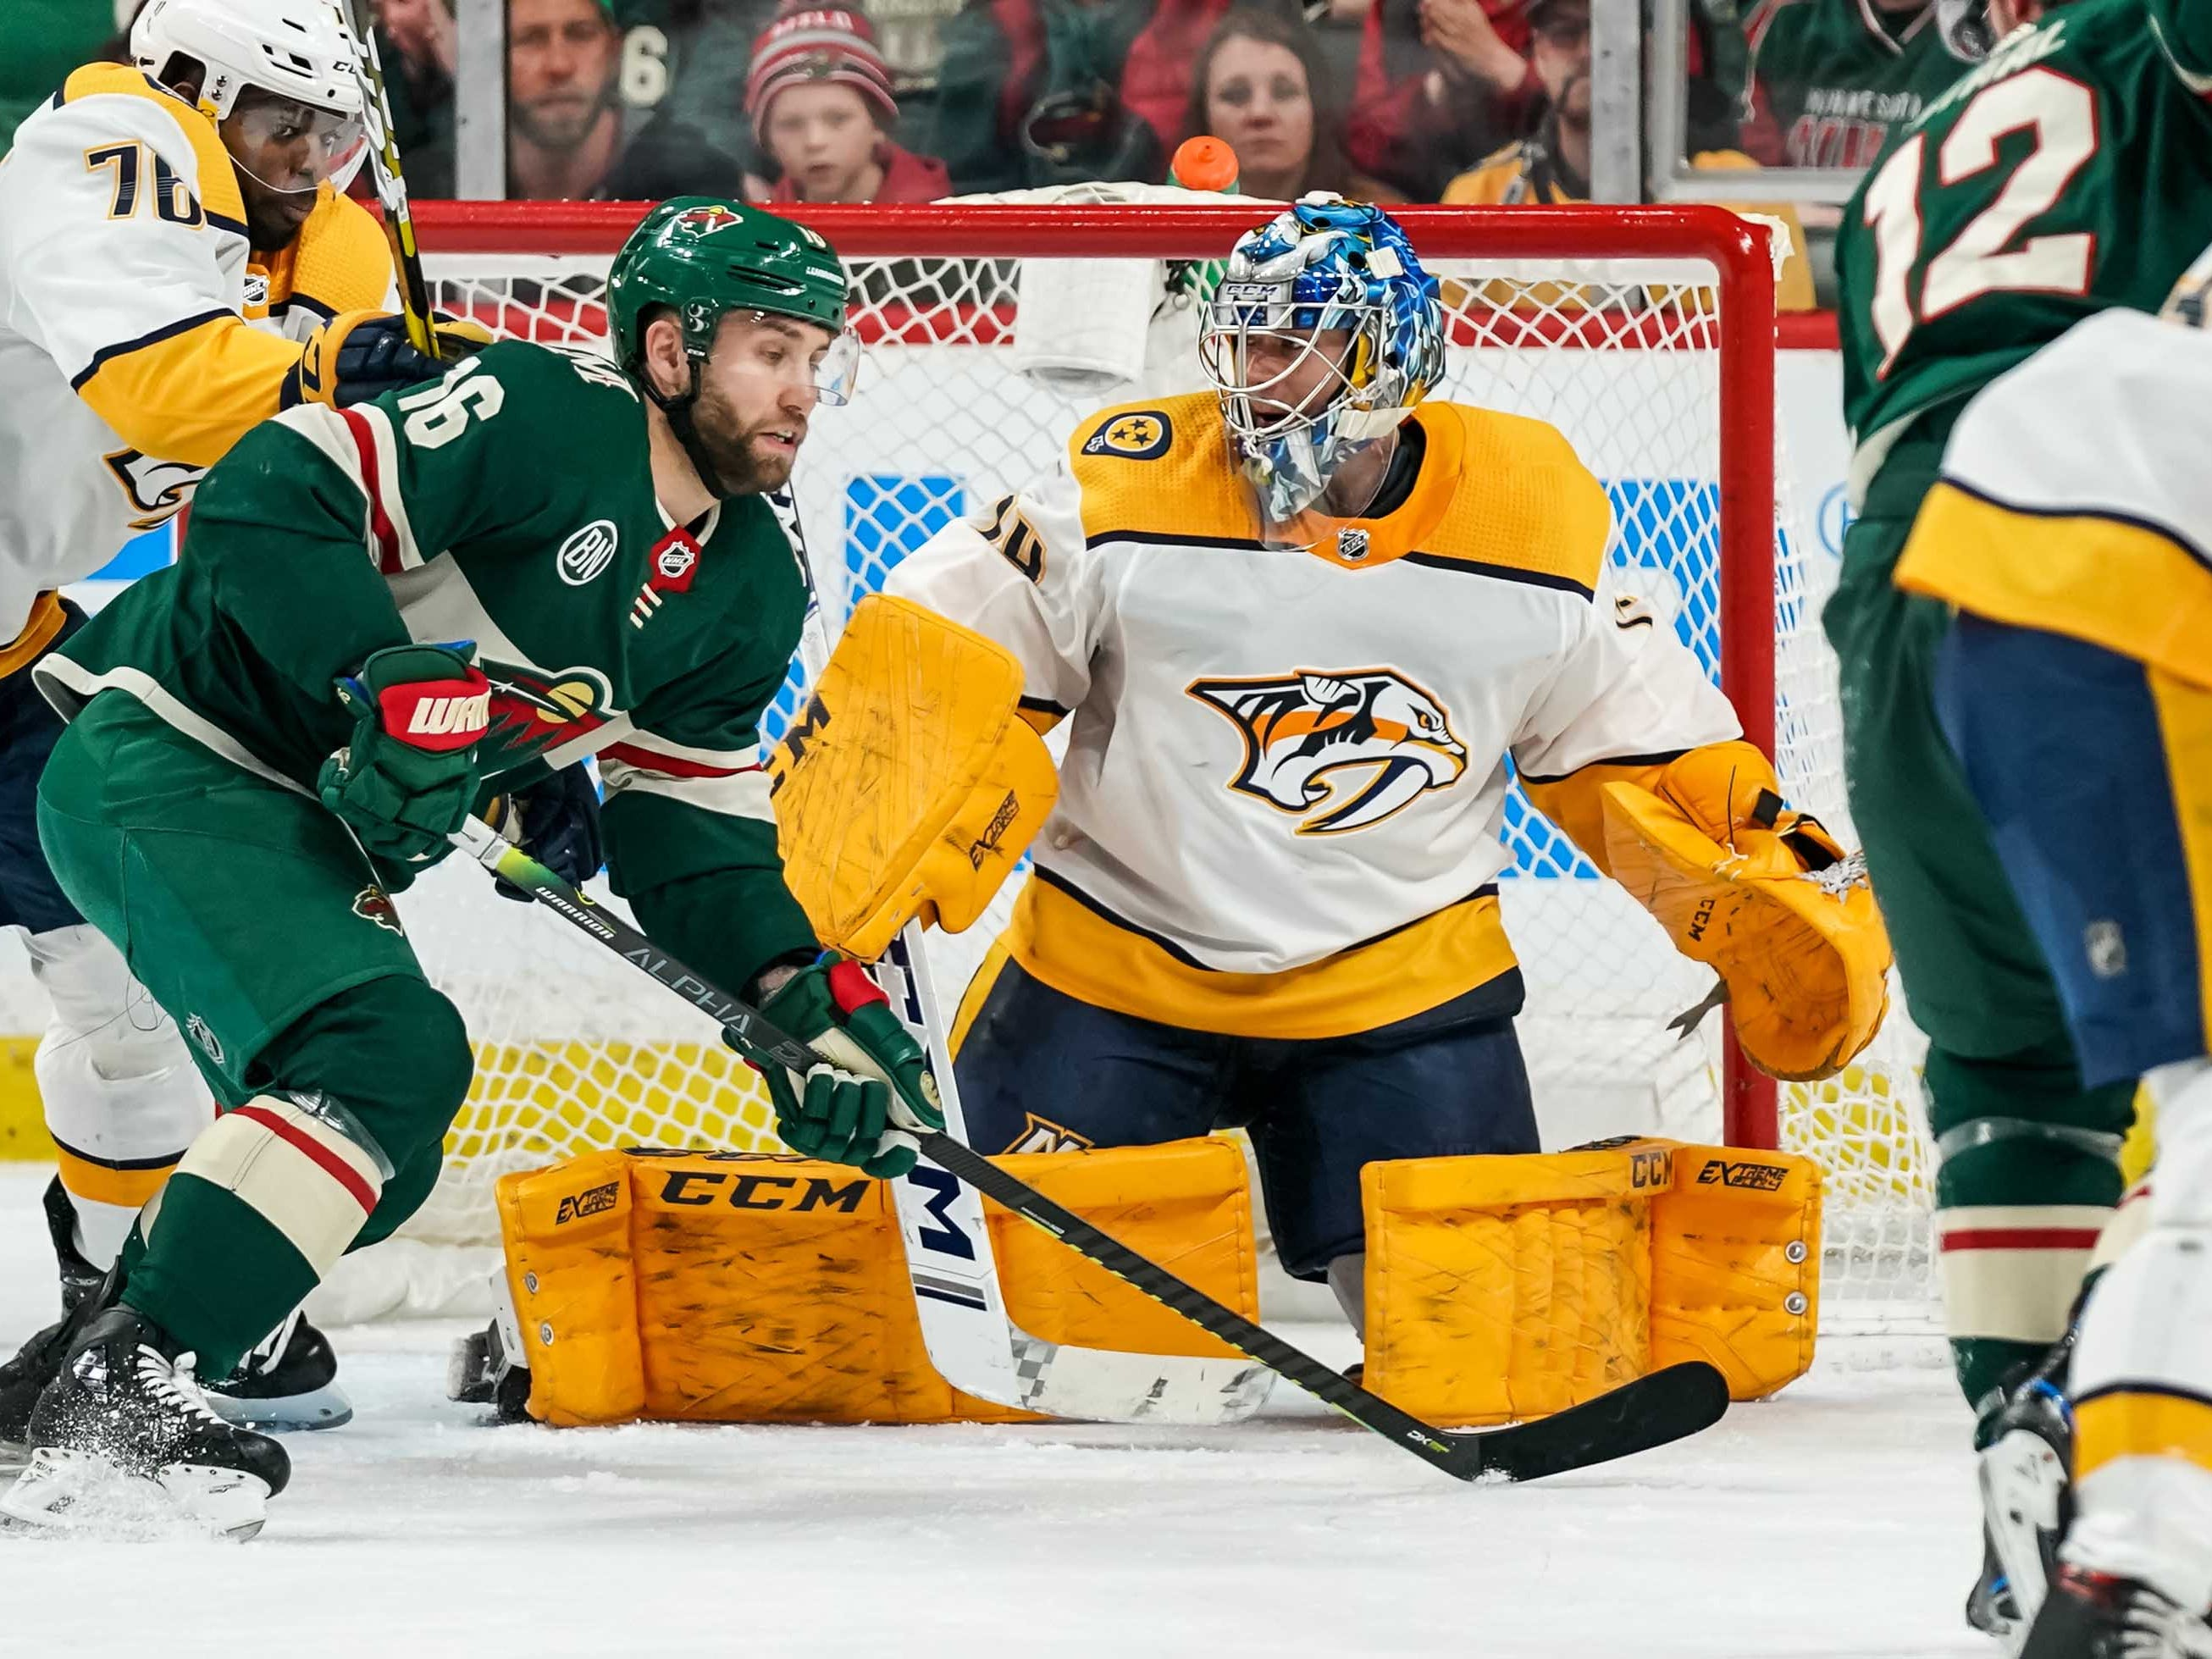 Nashville Predators goalie Juuse Saros (74) makes a save during the third period against the Minnesota Wild at Xcel Energy Center.